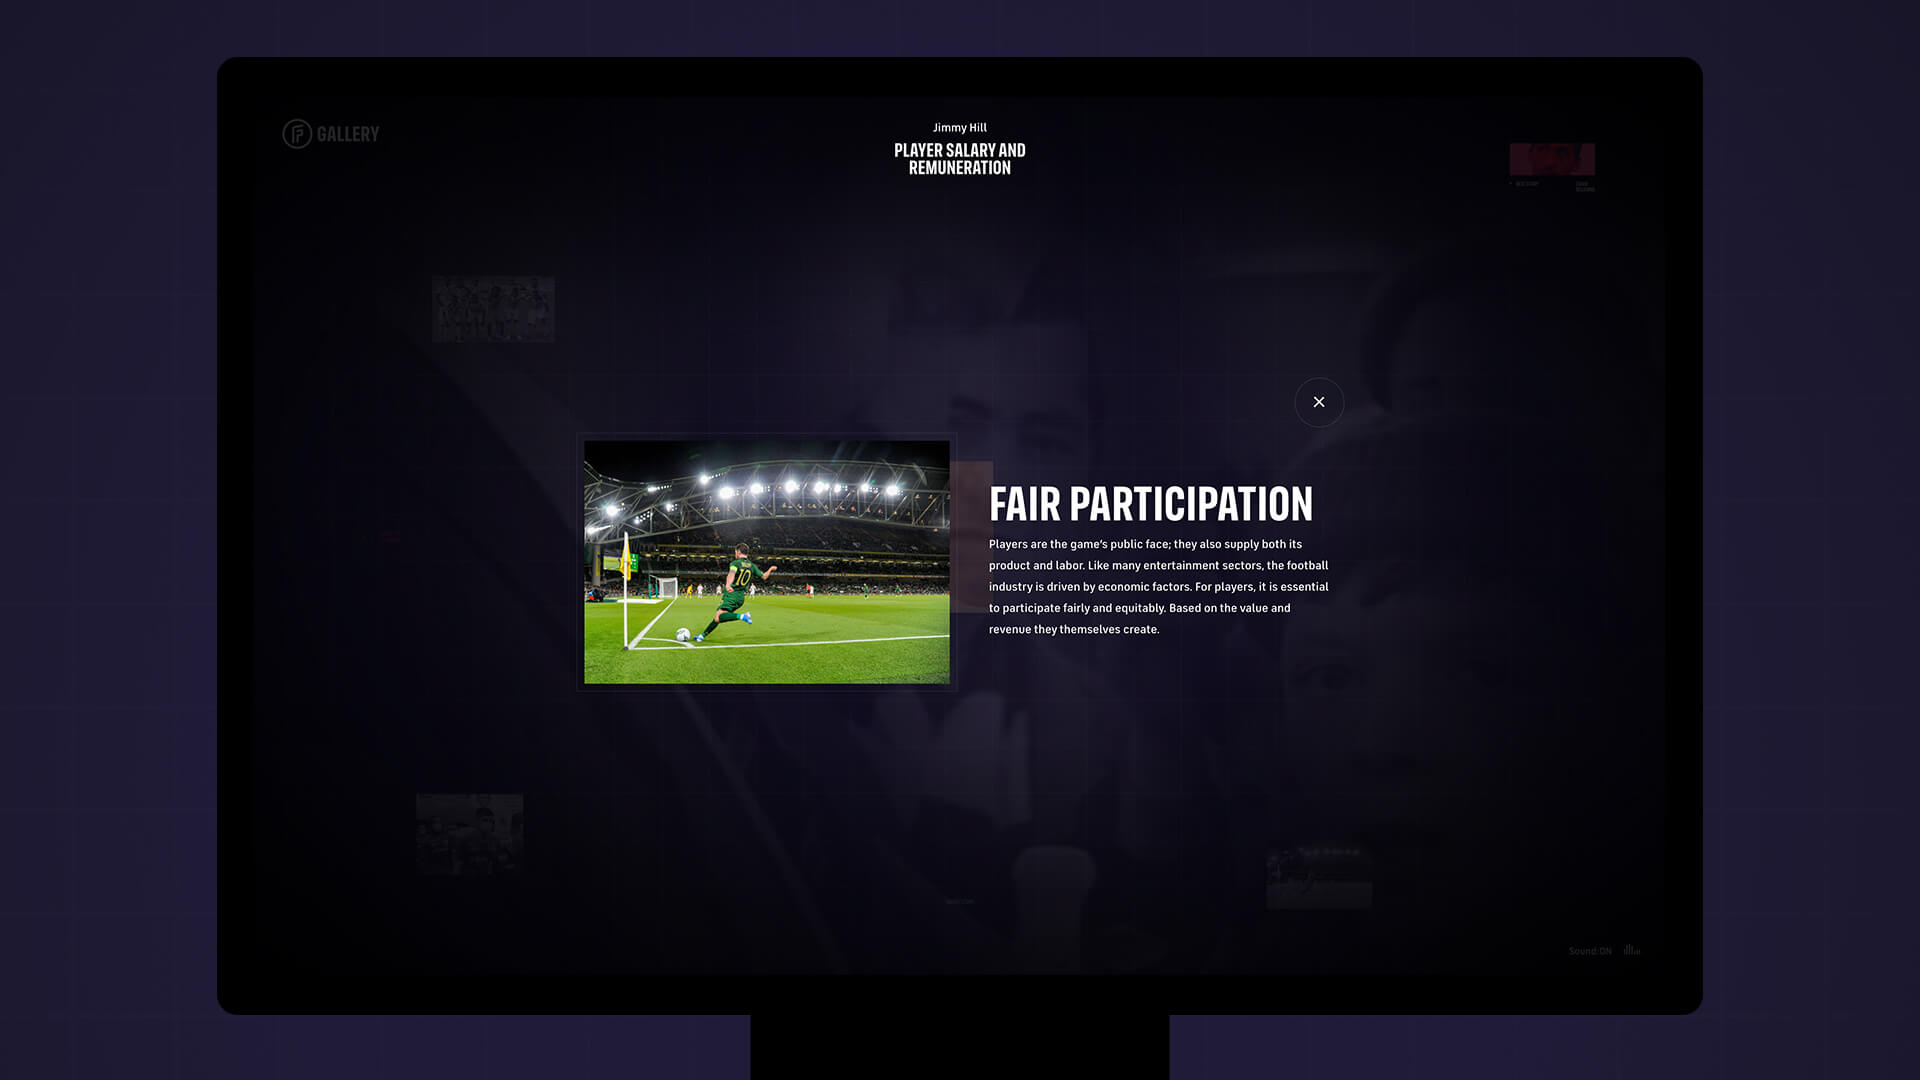 LL_The_FIFPRO_Gallery_website_slider_3